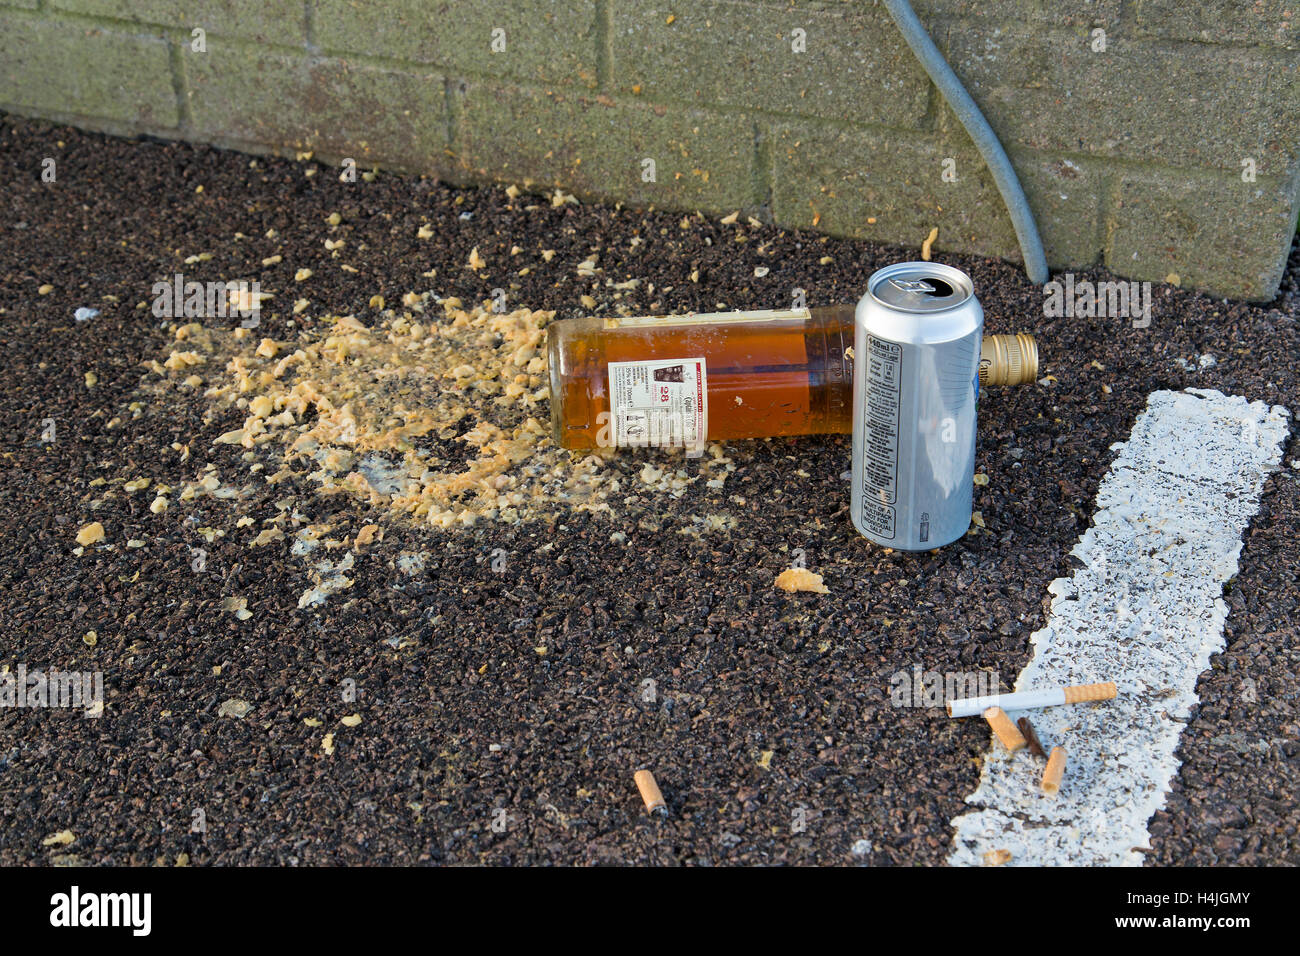 Pile of vomit on car park floor with can, bottle and cigarette butts - Stock Image